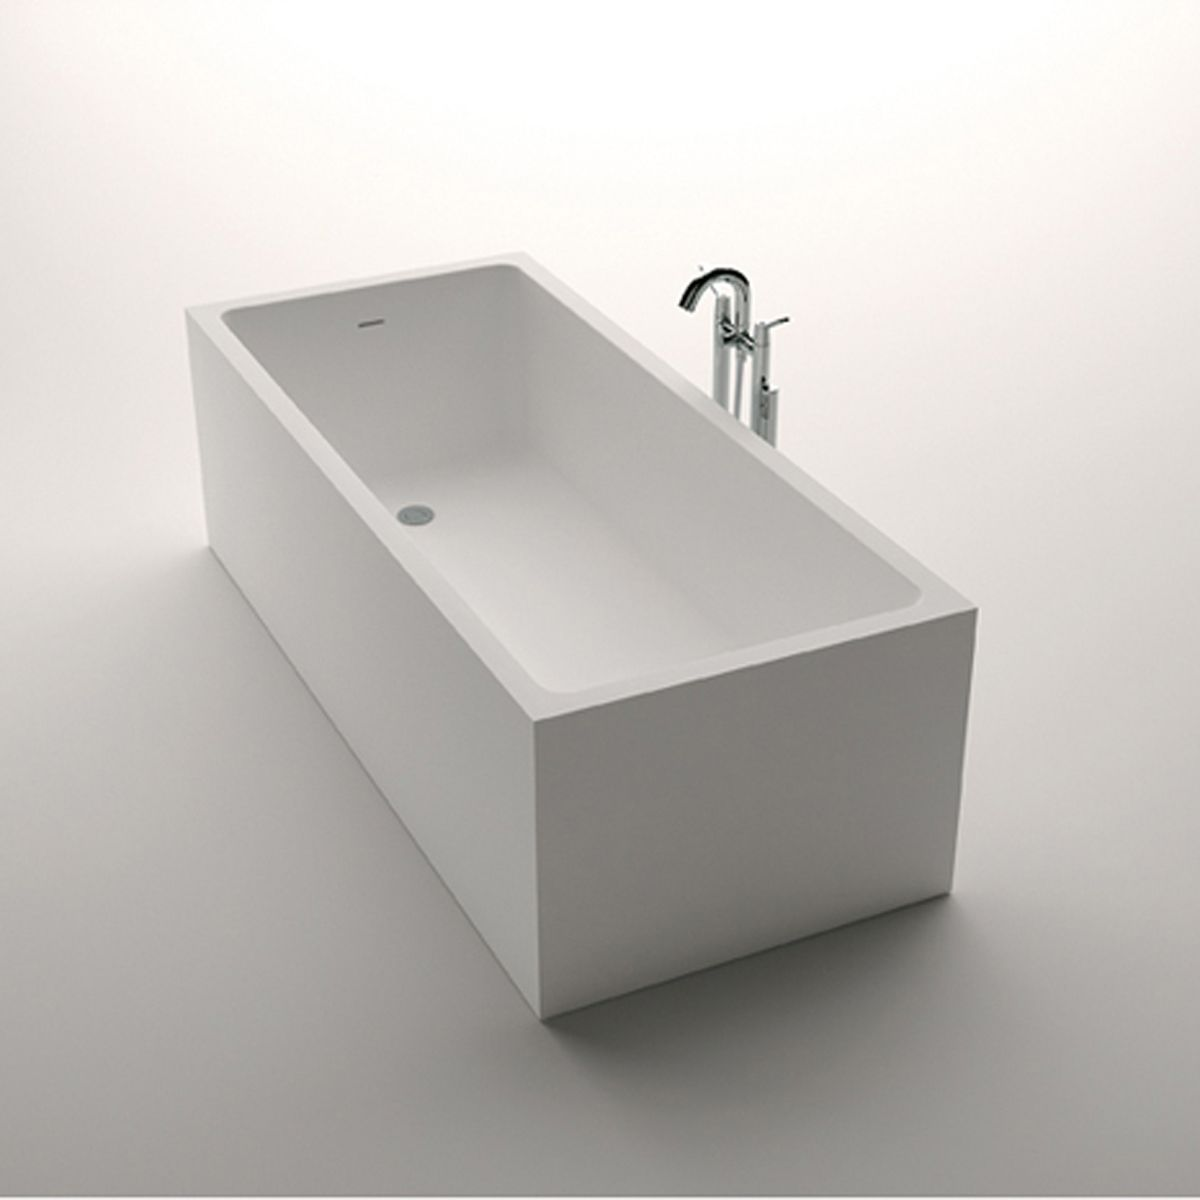 Good Bathroom Beautiful White Square Ceramic Bathtub Designs 27 Photos Of Modern  And Minimalist Bath Tub Design